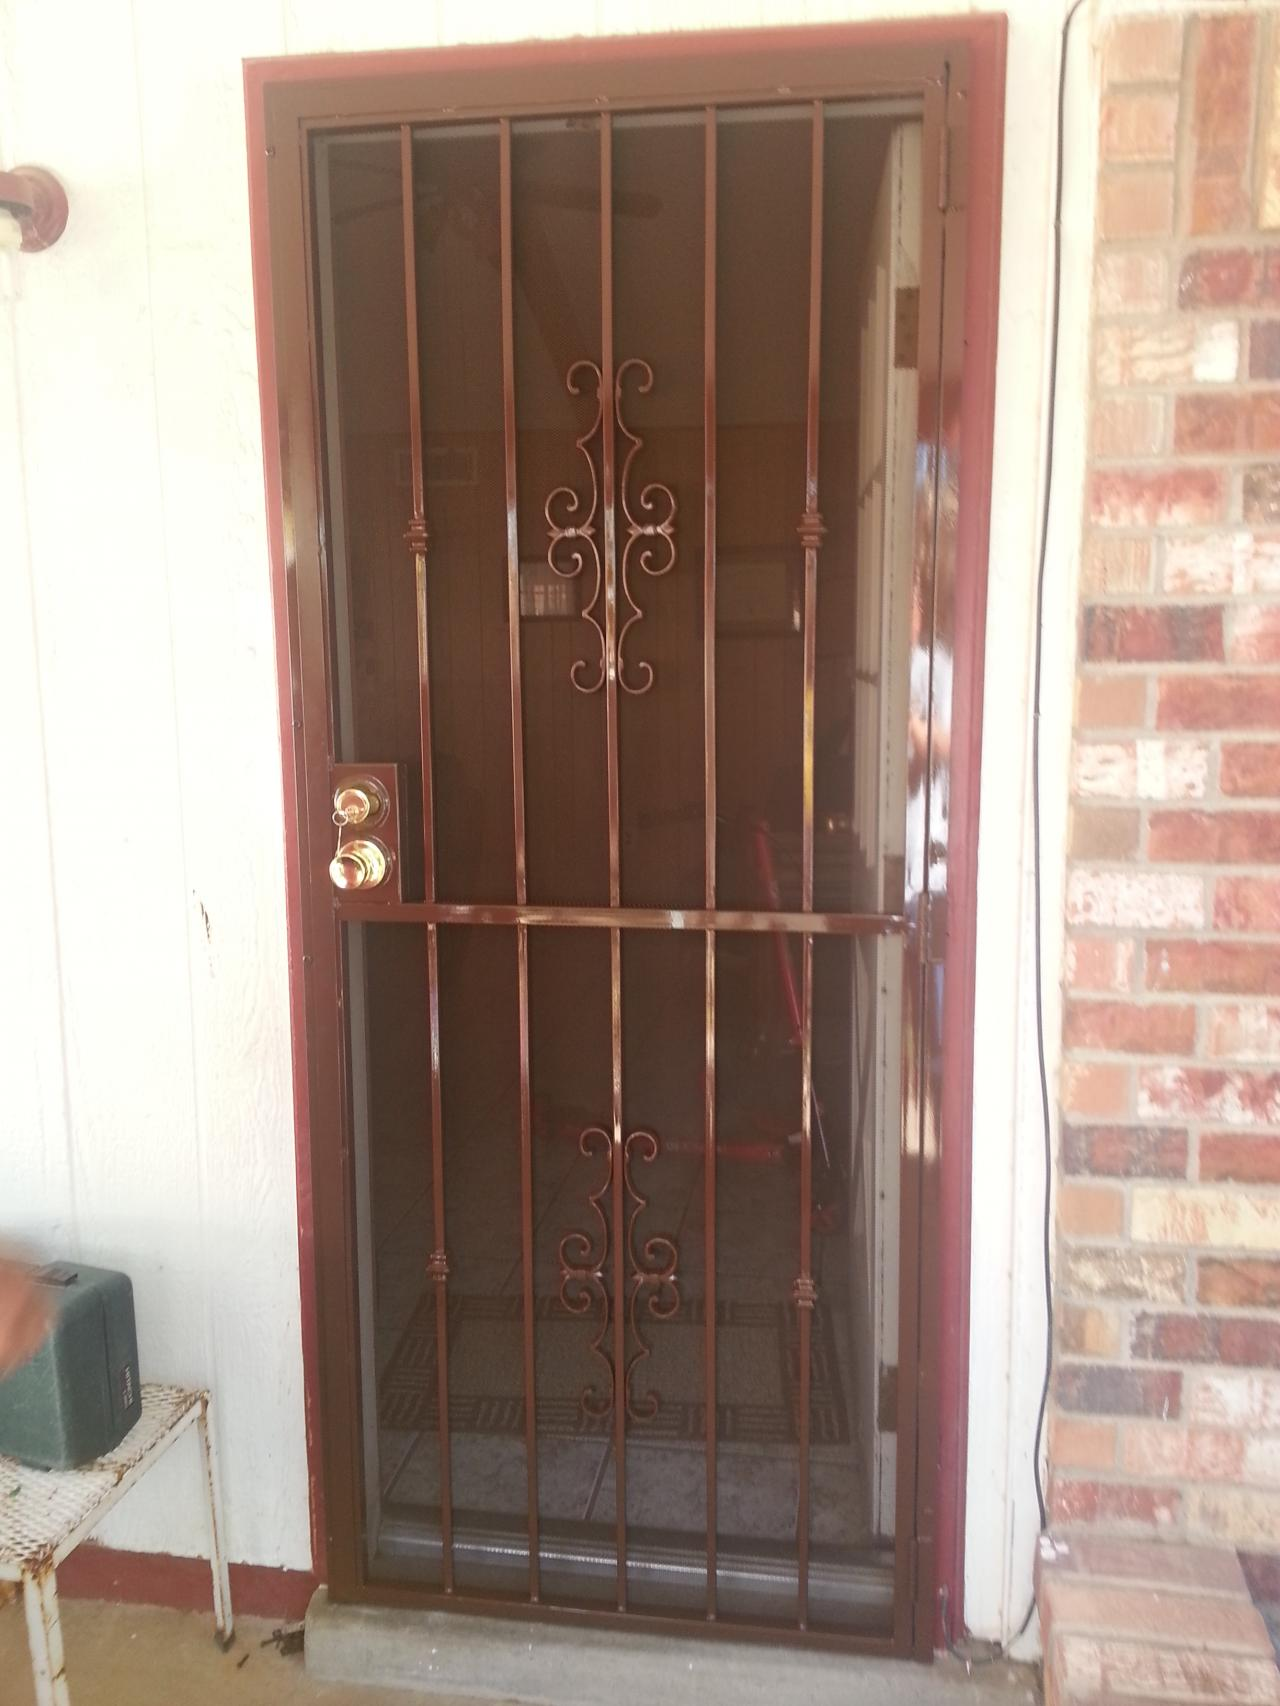 El Paso Custom Iron Works Standard Security Doors